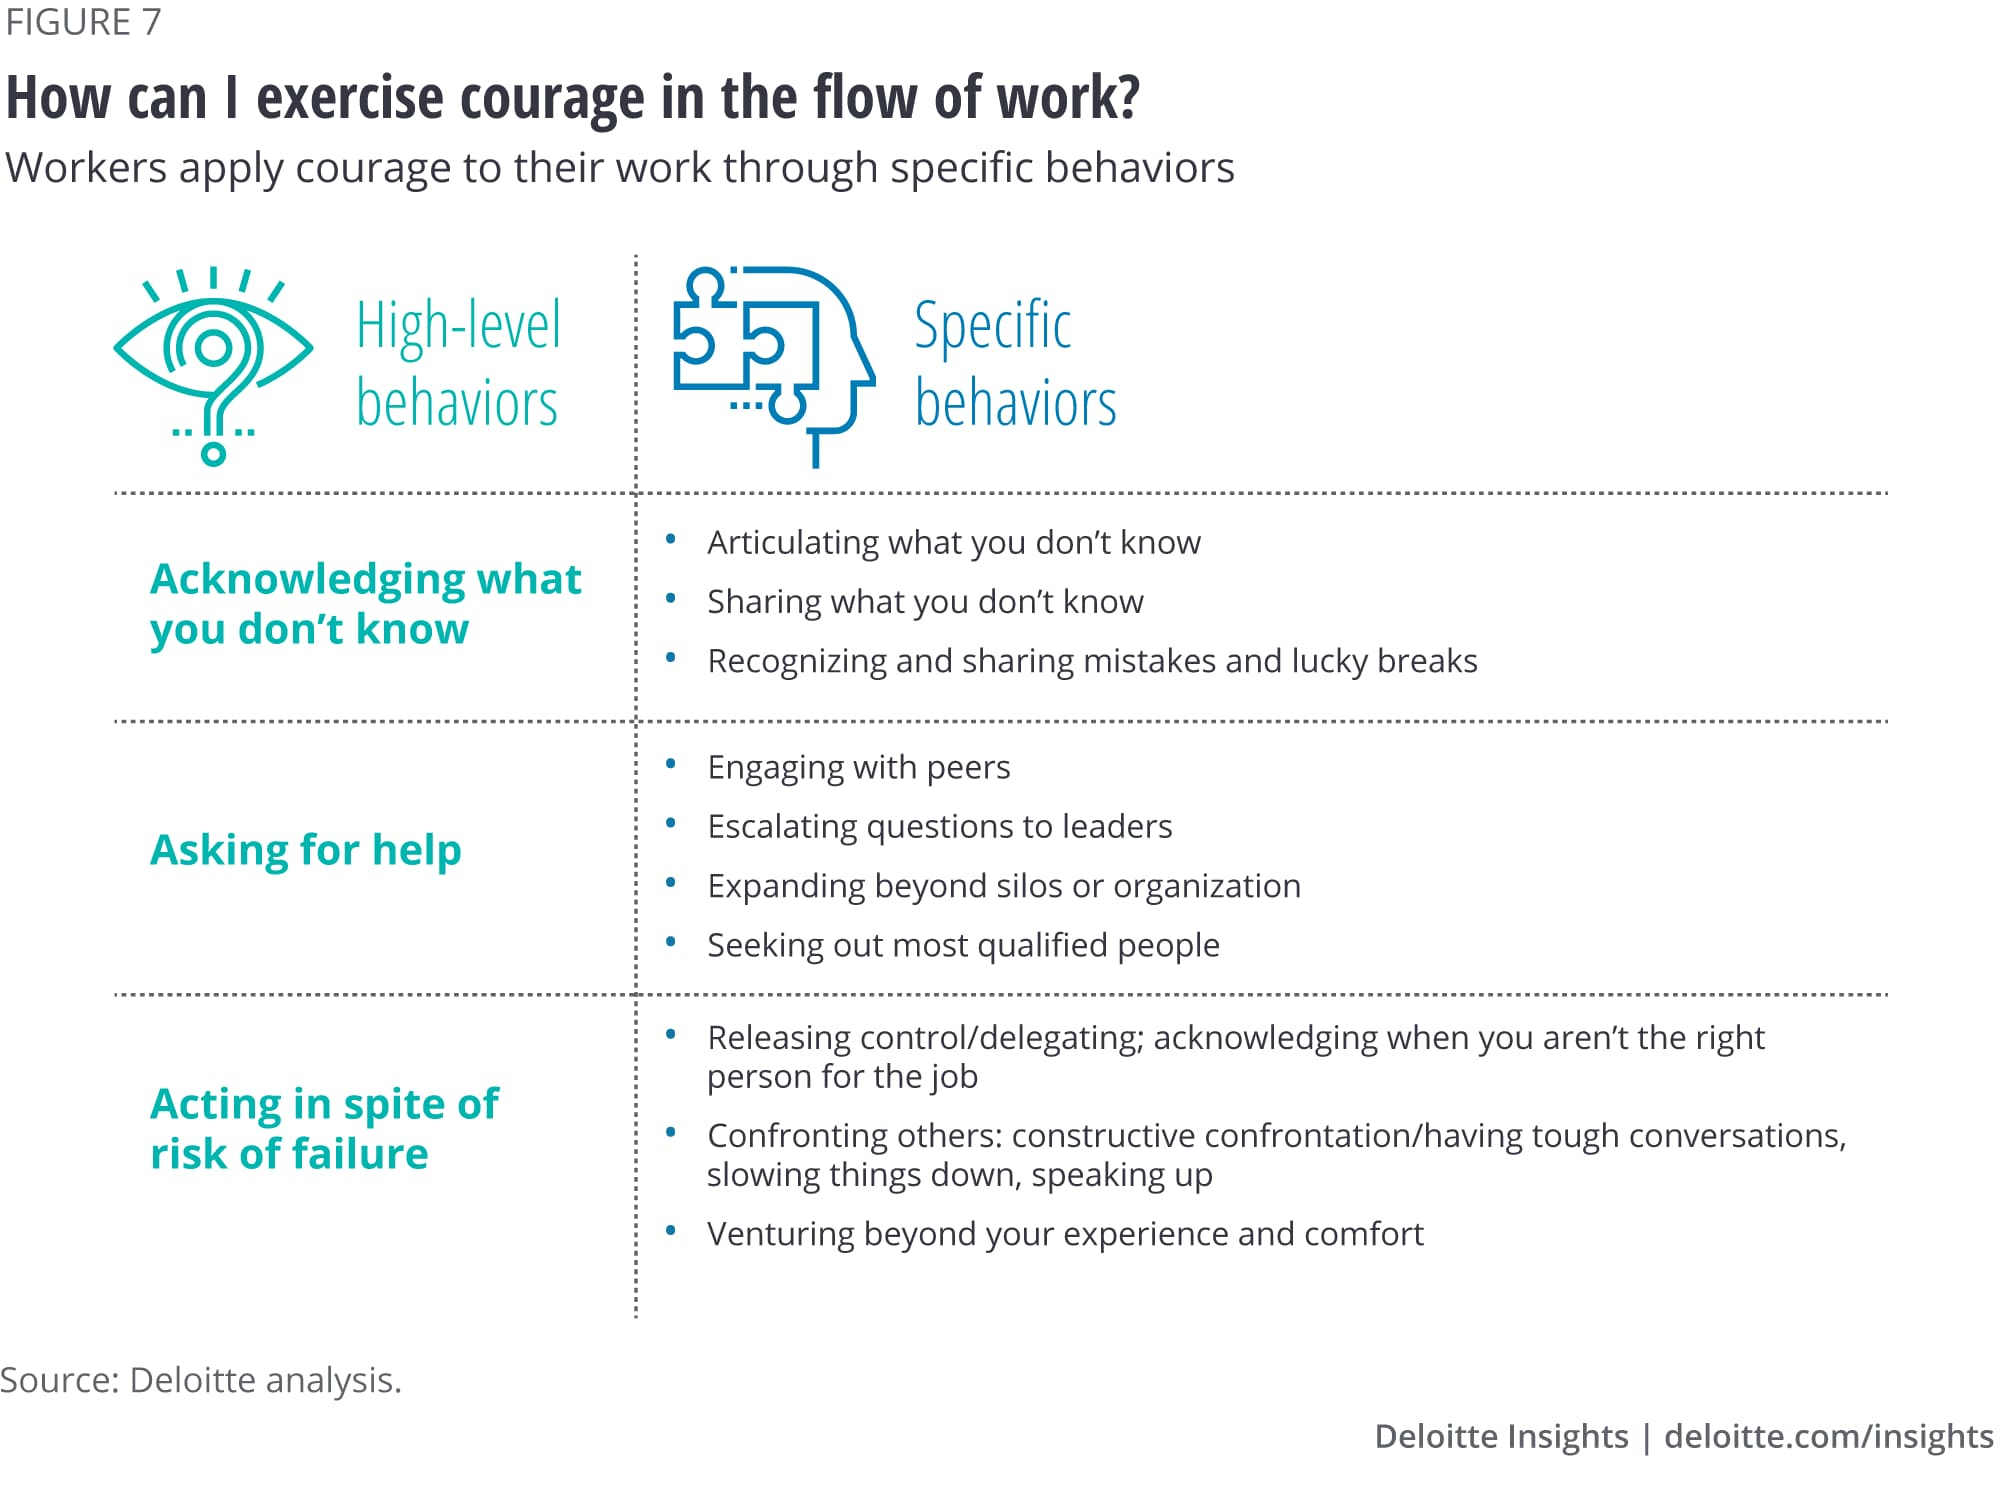 How can I exercise courage in my work?